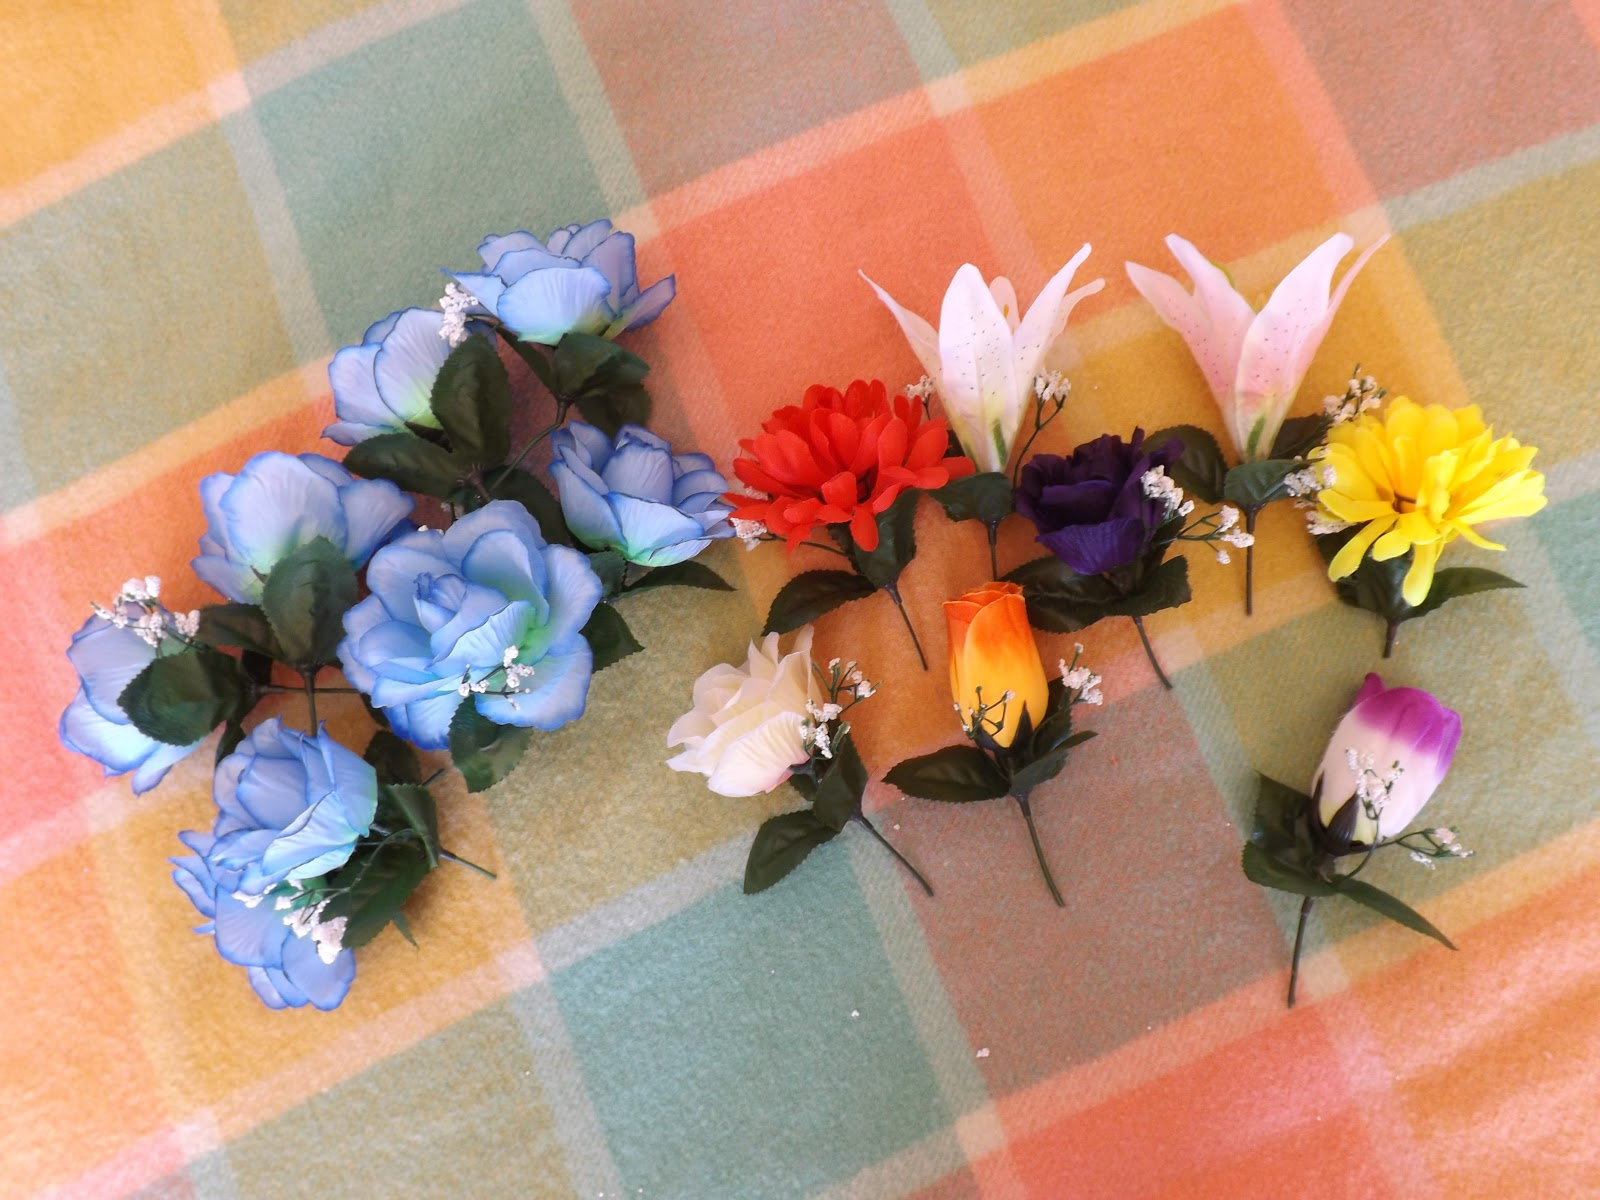 Diy flower crowns taken by surprise choose what flowers you would like to use and draft your design by arranging the flowers along the headband i chose blue as my focus colour and added a izmirmasajfo